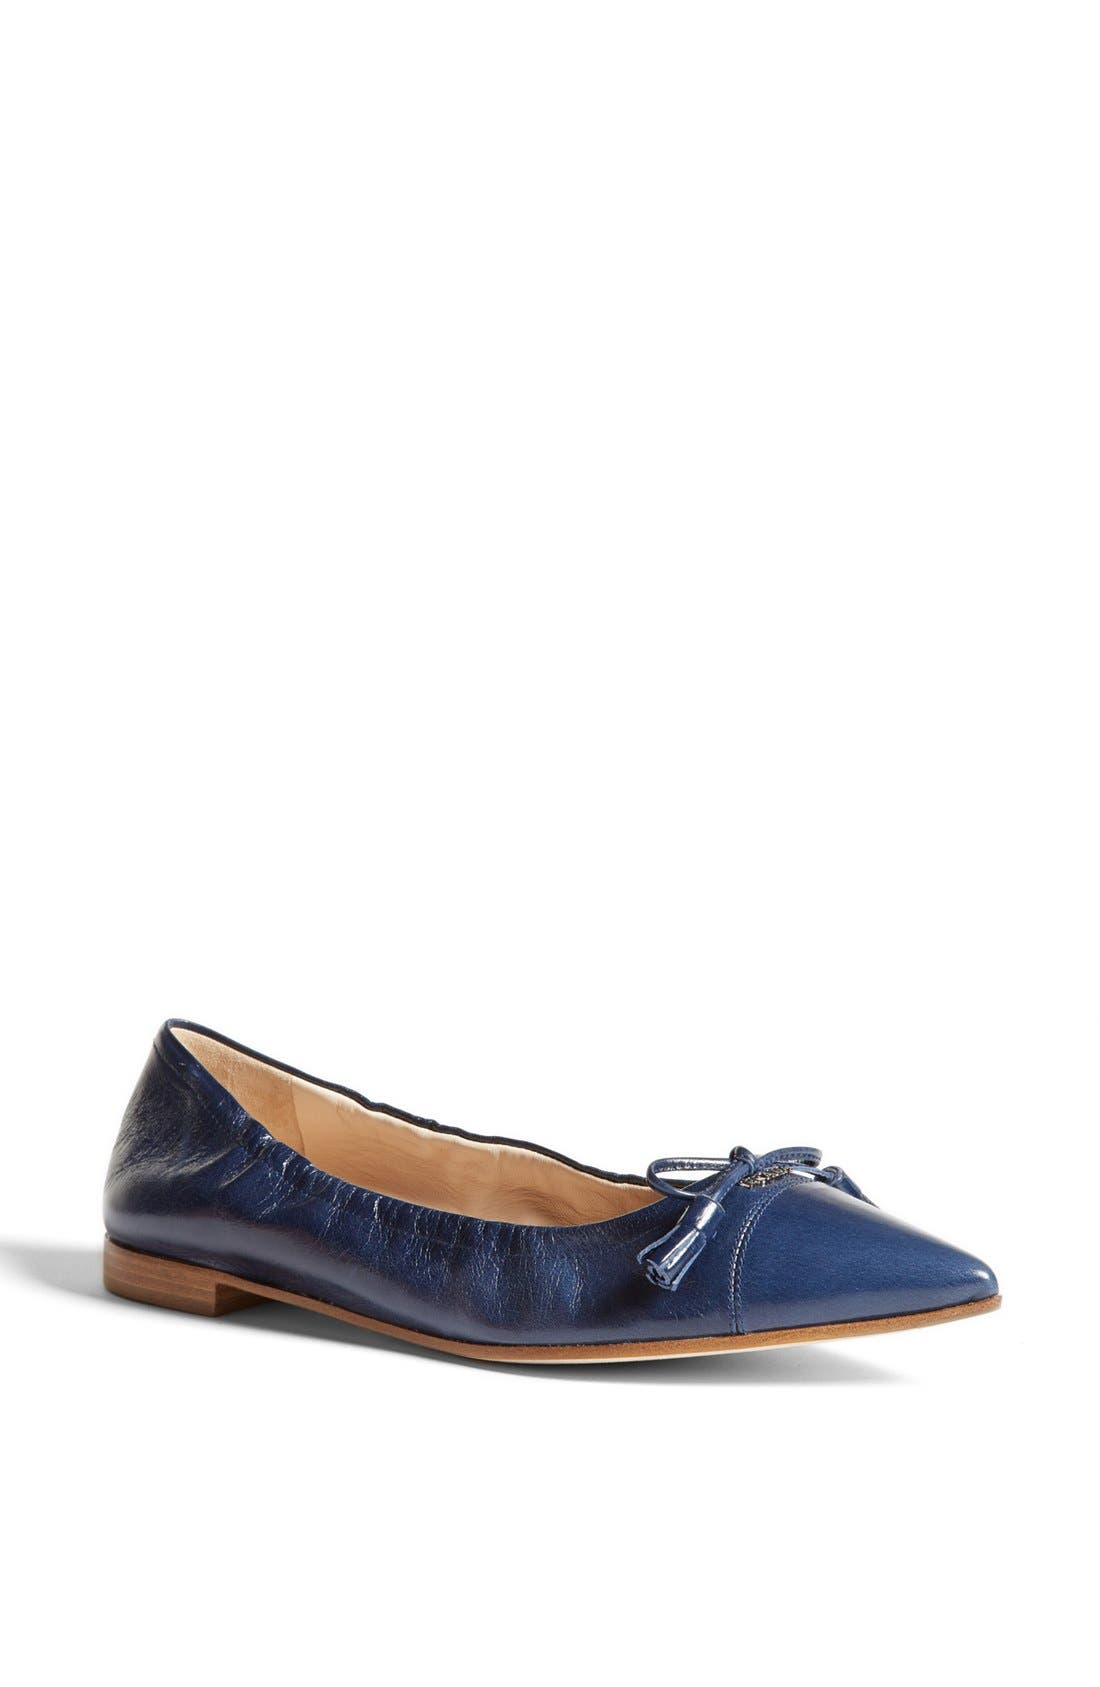 Alternate Image 1 Selected - Prada Pointy Toe Ballerina Flat